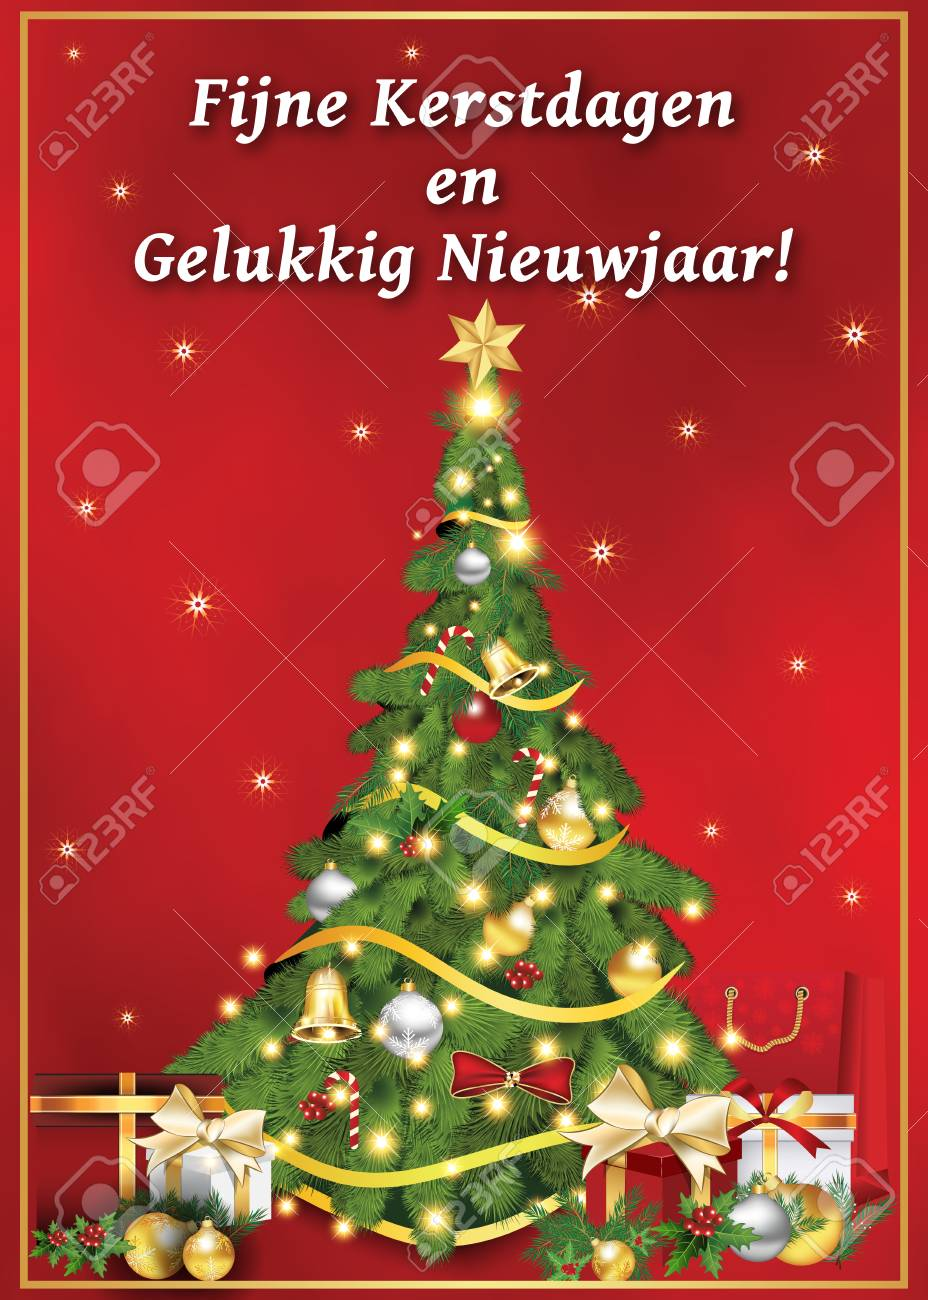 graphic relating to Merry Christmas Printable called Fijne Kerstdagen en Gelukkig Nieuwjaar! - dutch language: Merry..